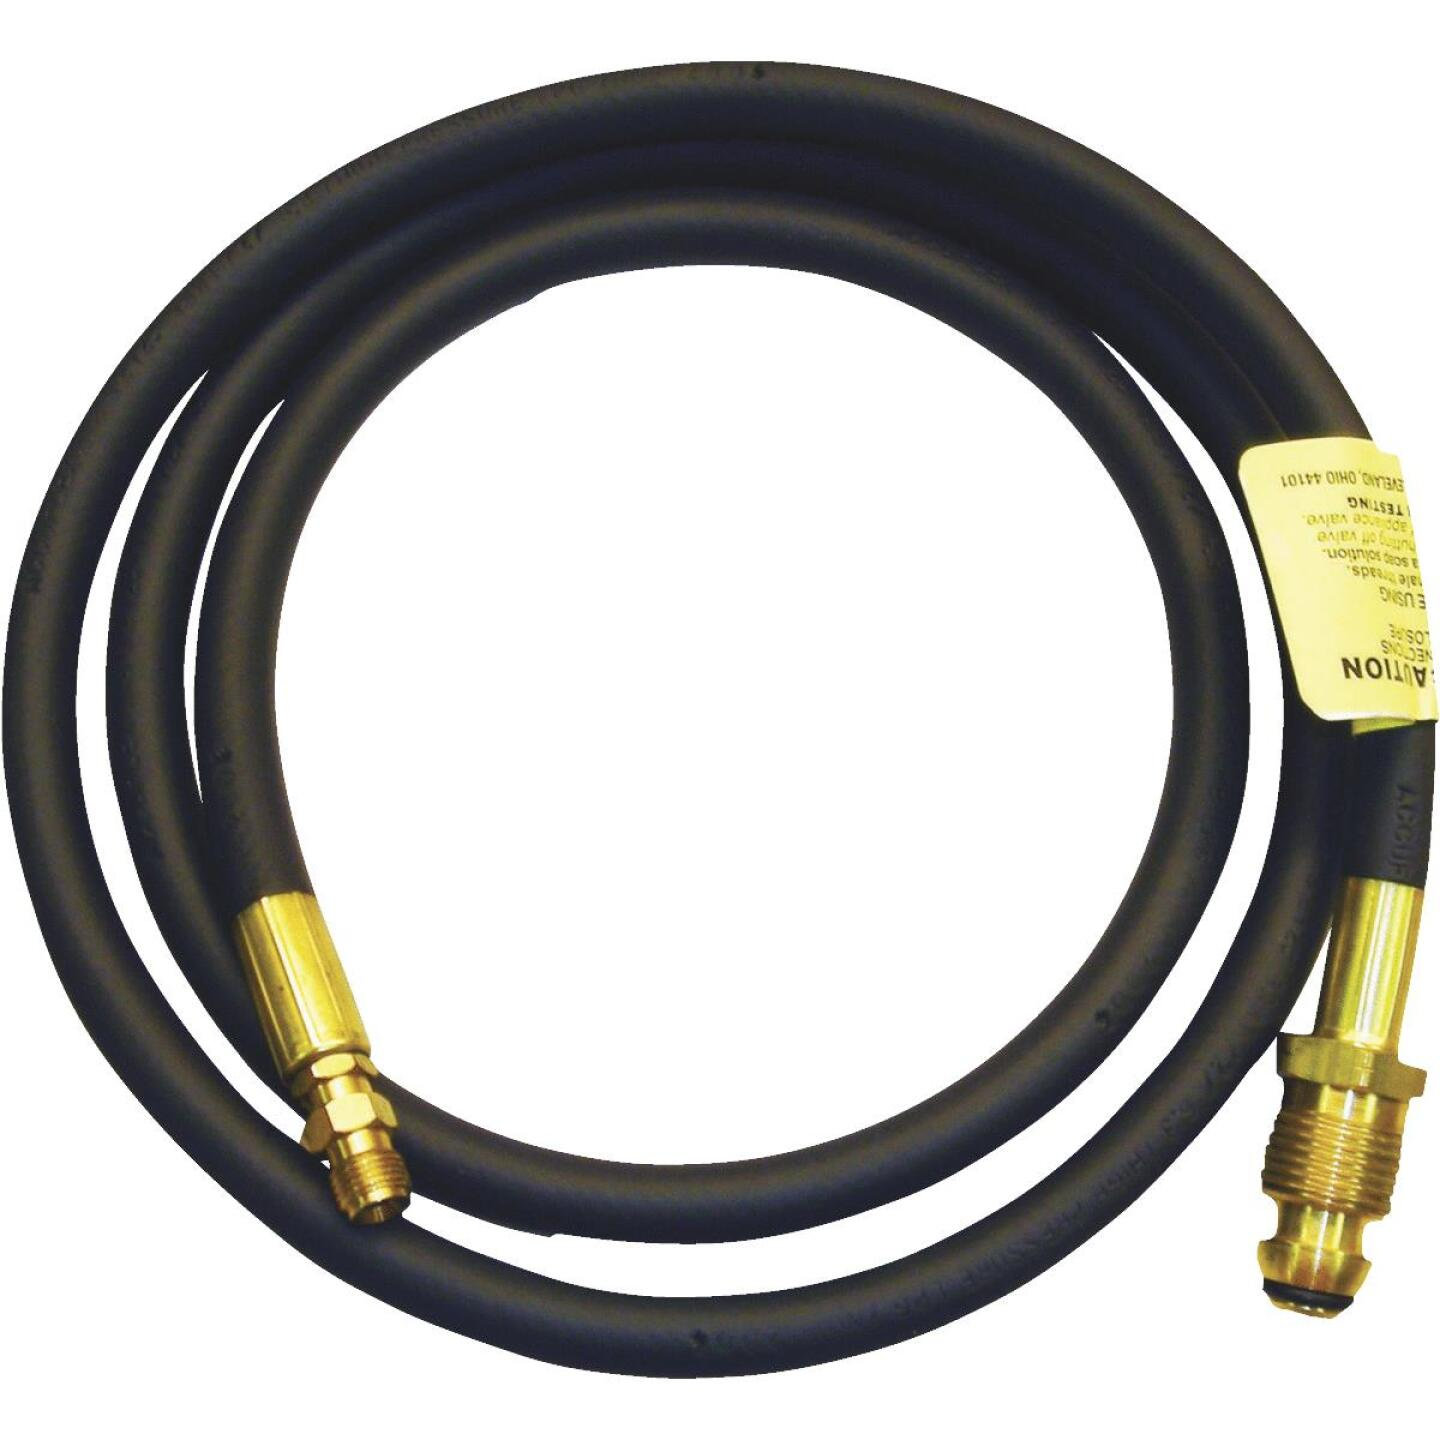 MR. HEATER 3 Ft. x POL x 1/4 In. Inverted Male Flare Motor Home LP Hose Assembly Image 1